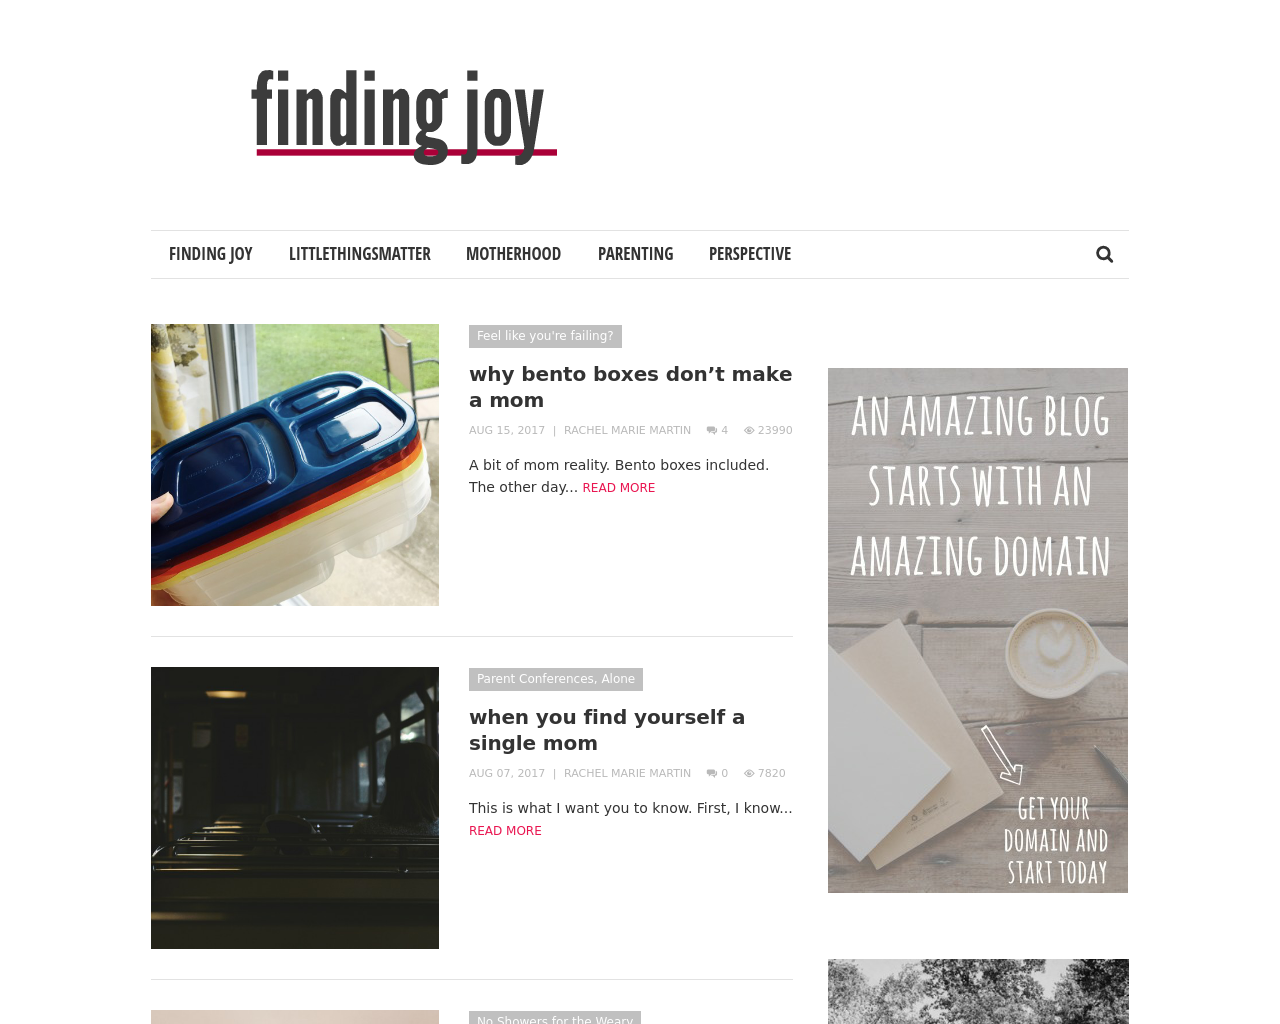 Finding-Joy-Advertising-Reviews-Pricing